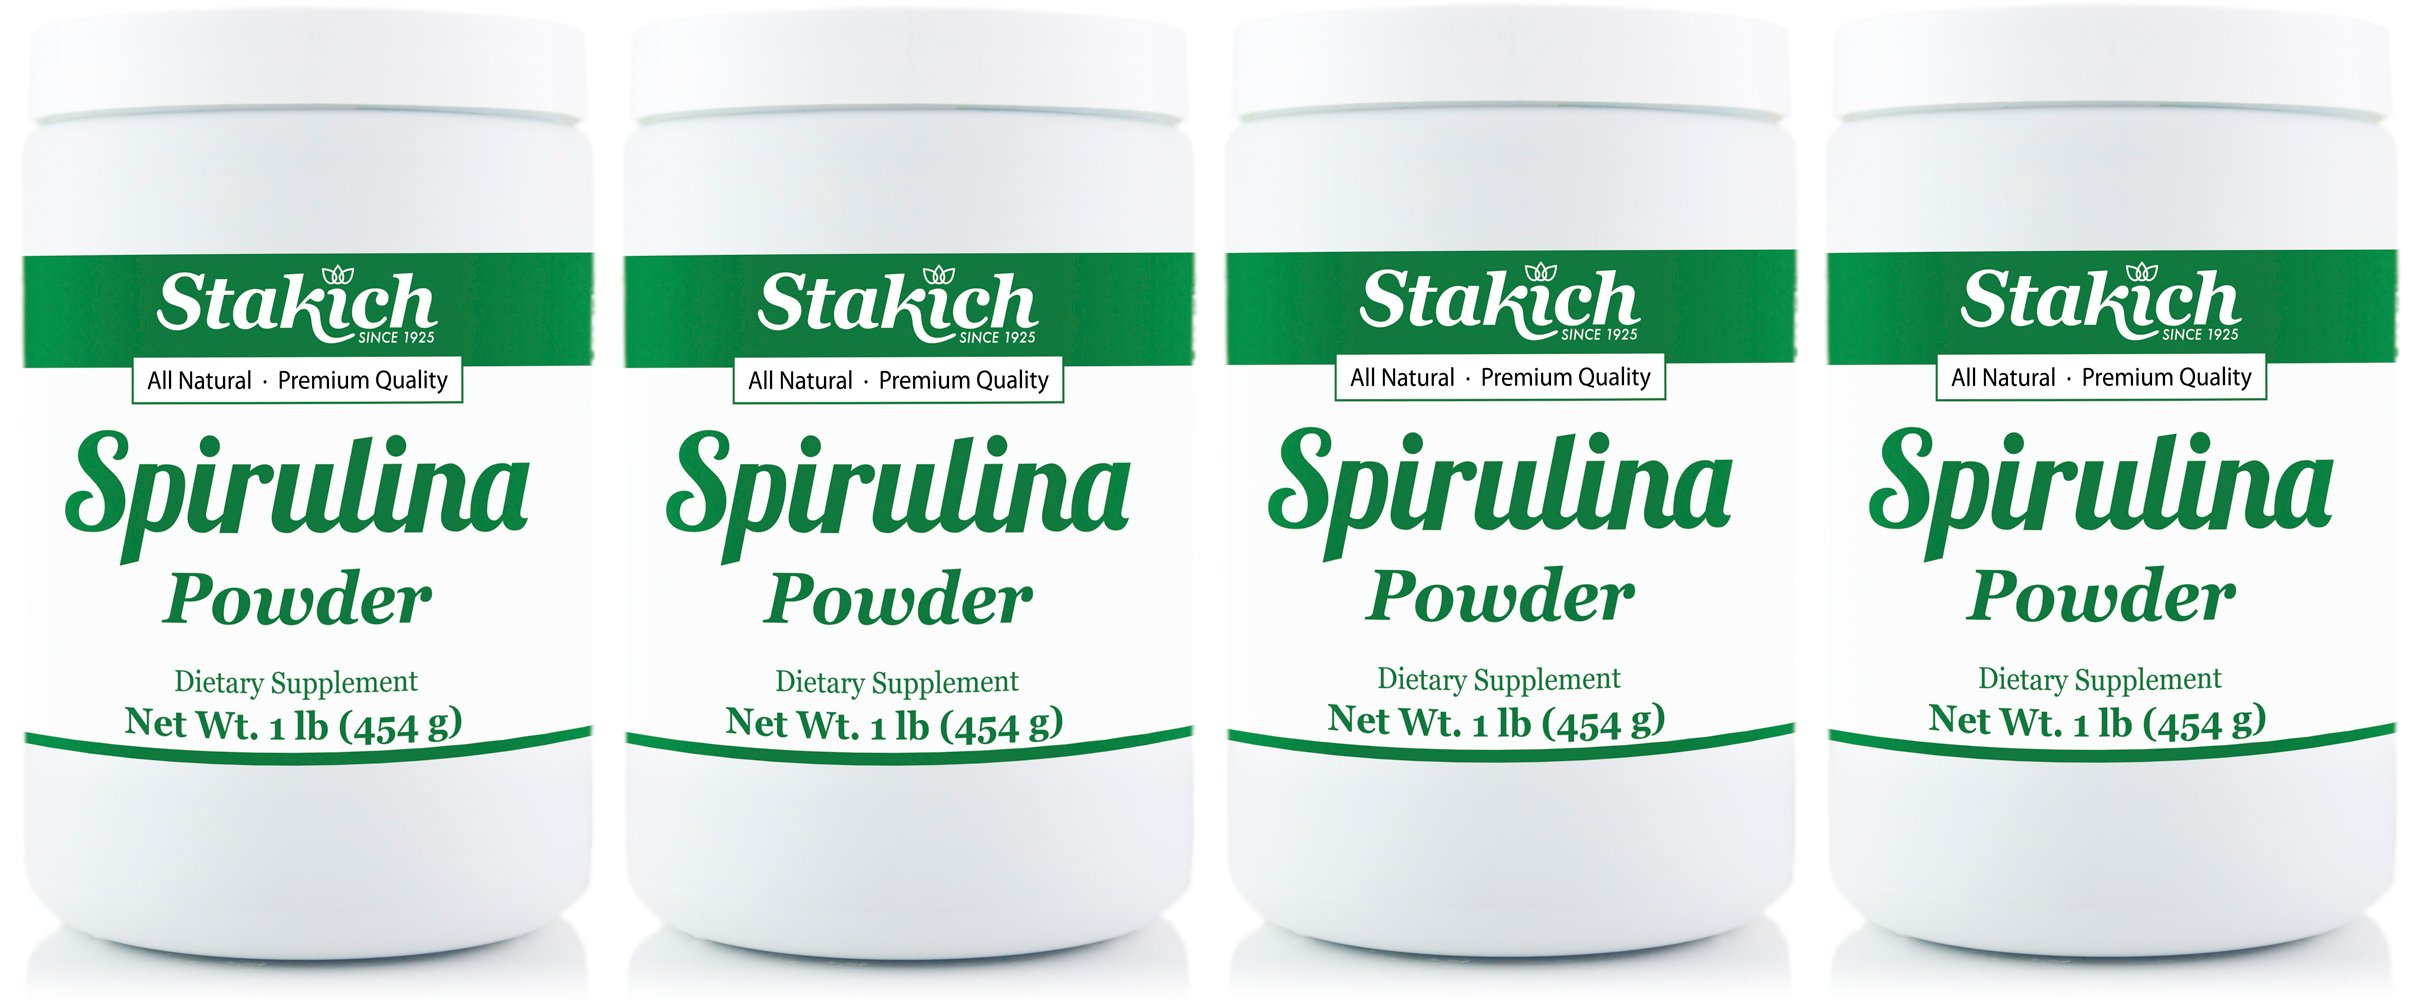 Stakich SPIRULINA POWDER 4 LBS (4 jars of 1 LB) - 100% Pure, All Natural, Top Quality